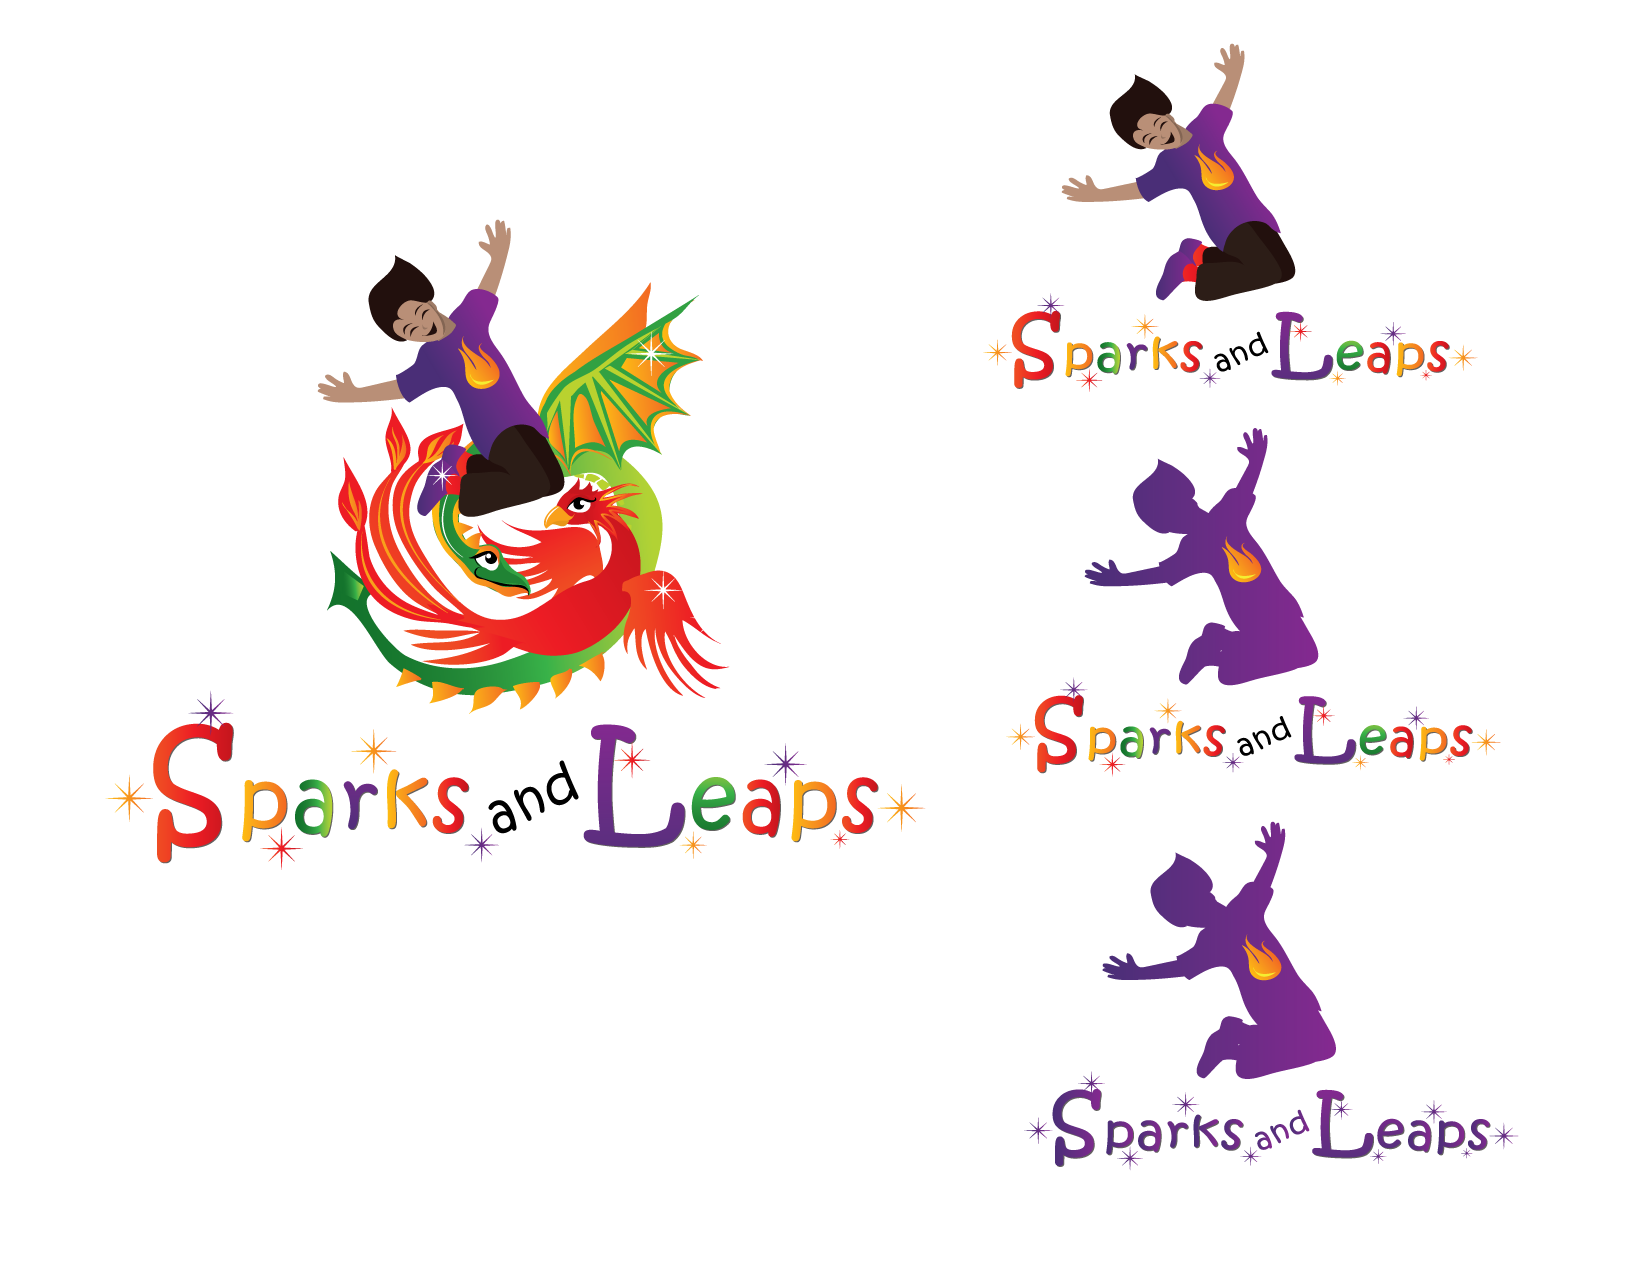 Help Sparks and Leaps with a new logo